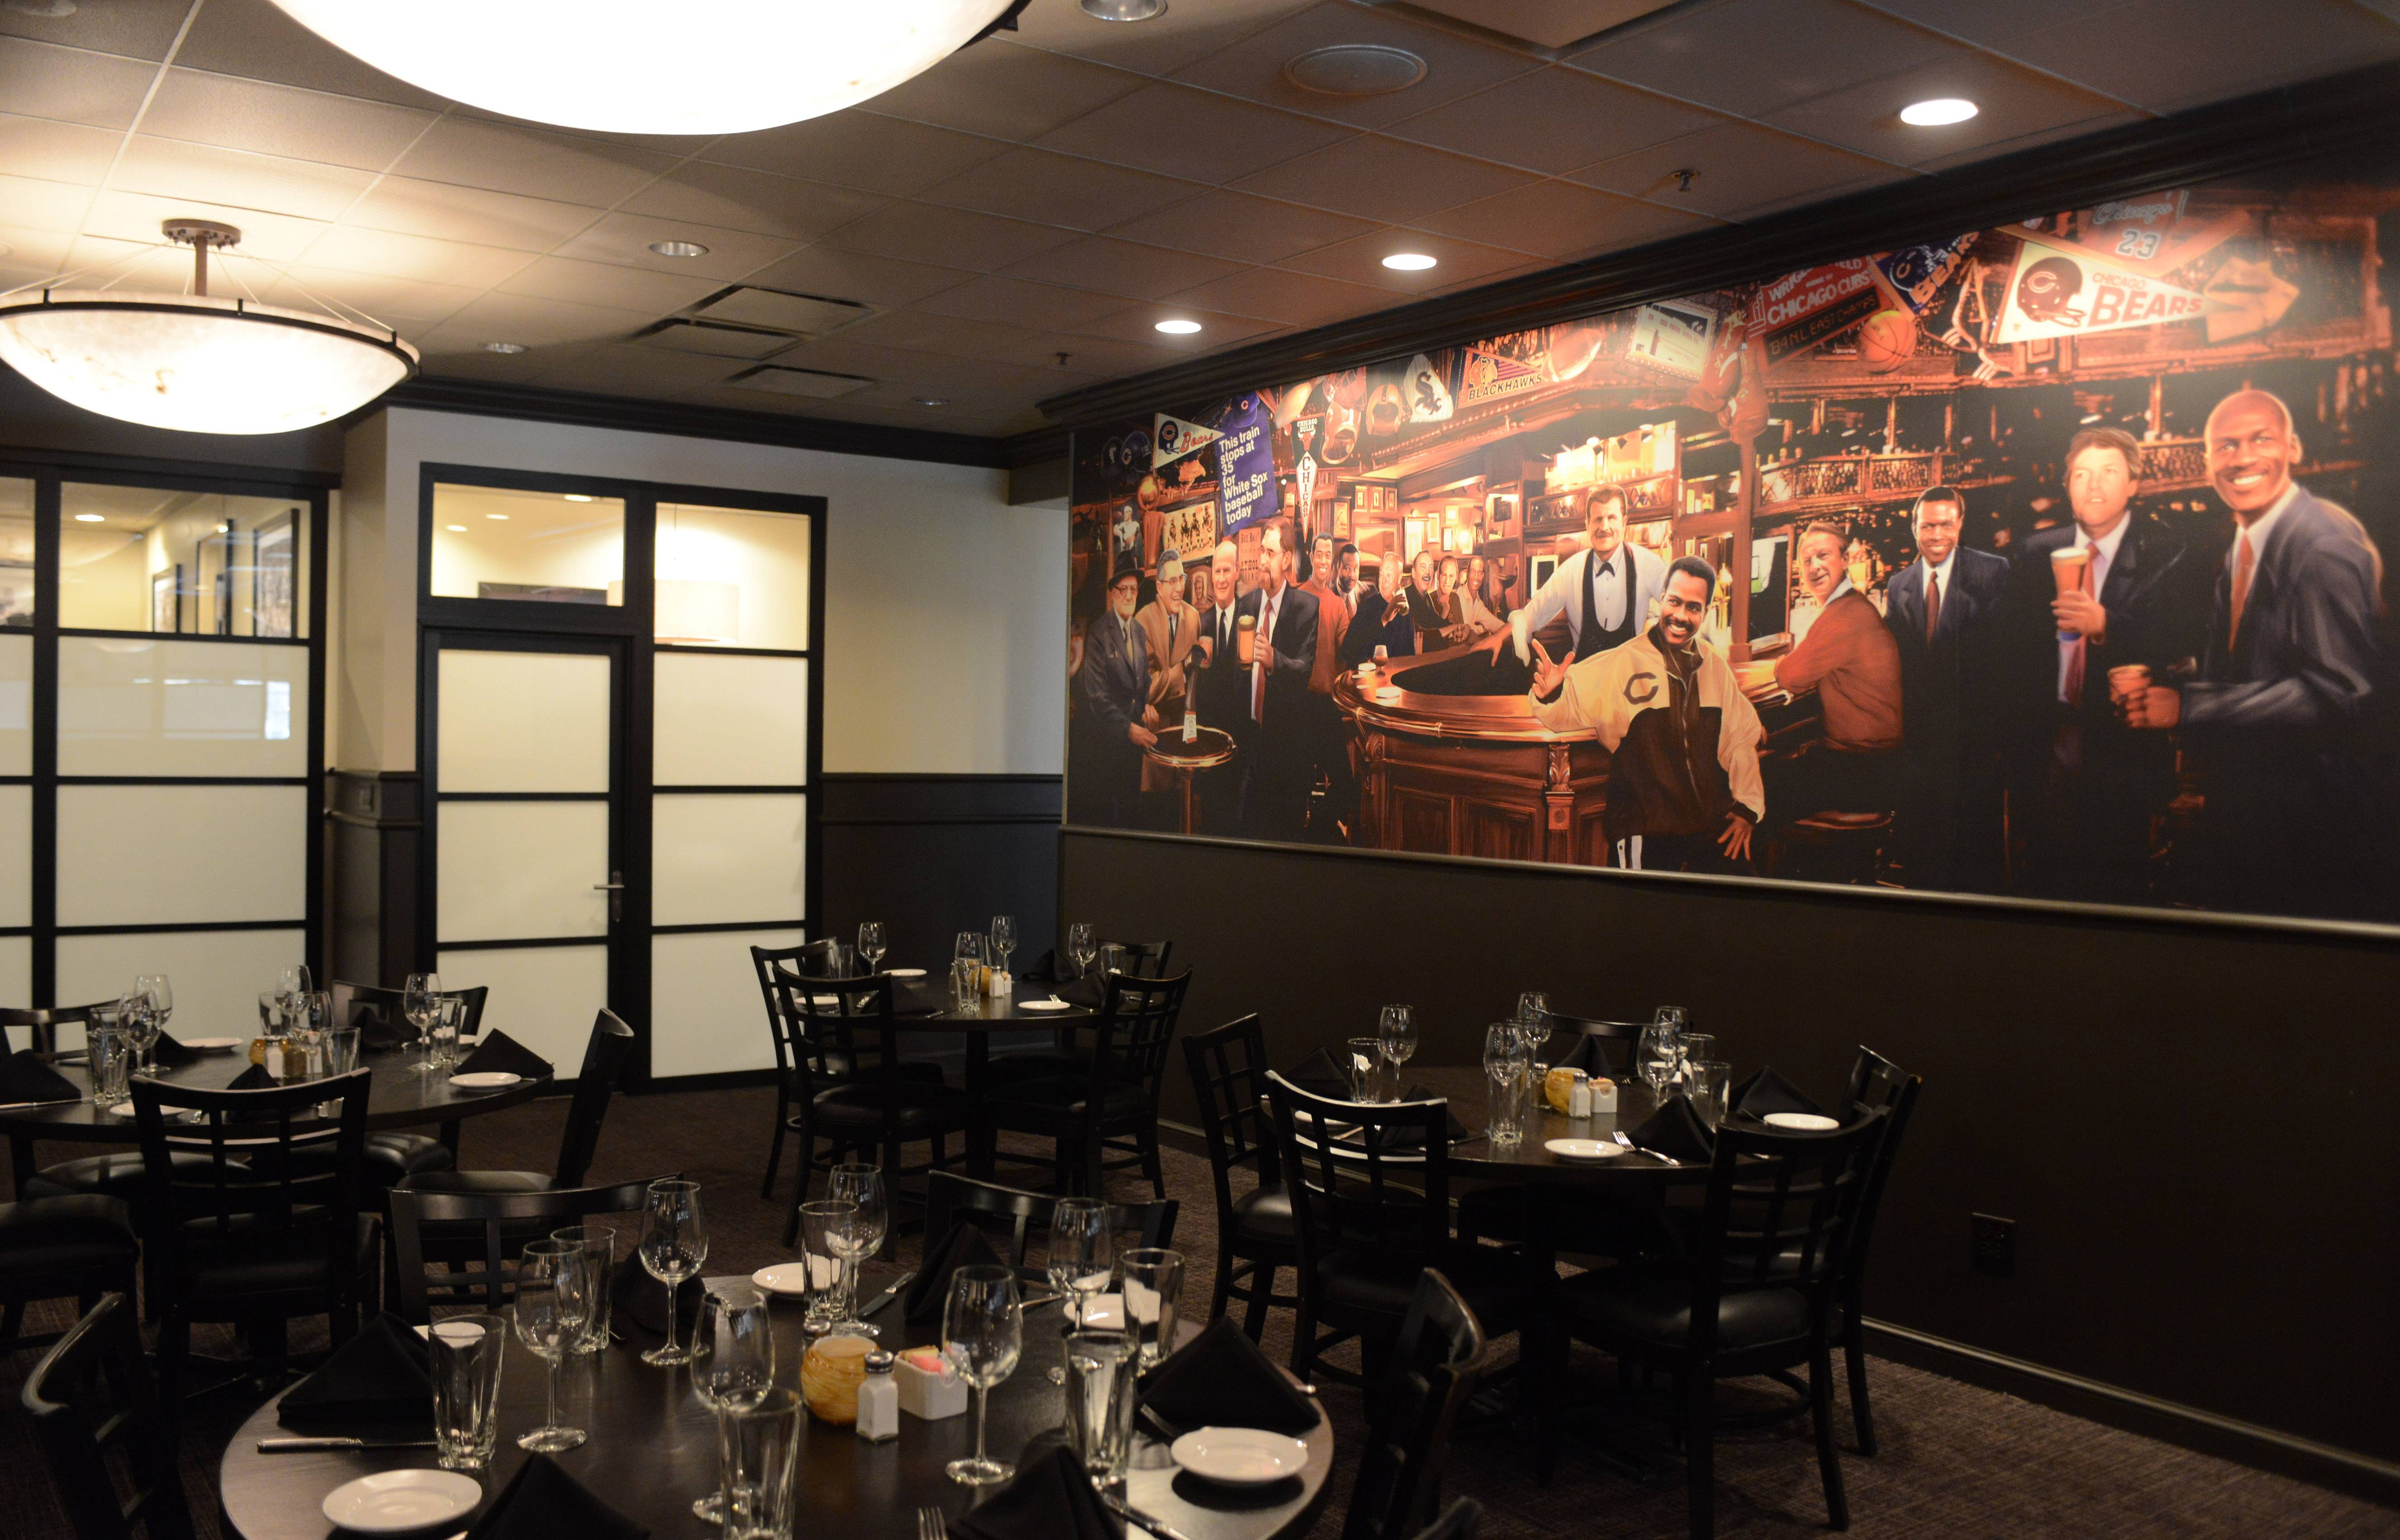 A mural celebrating Chicago sports legends greets diners at Ditka's Restaurant in Arlington Heights.